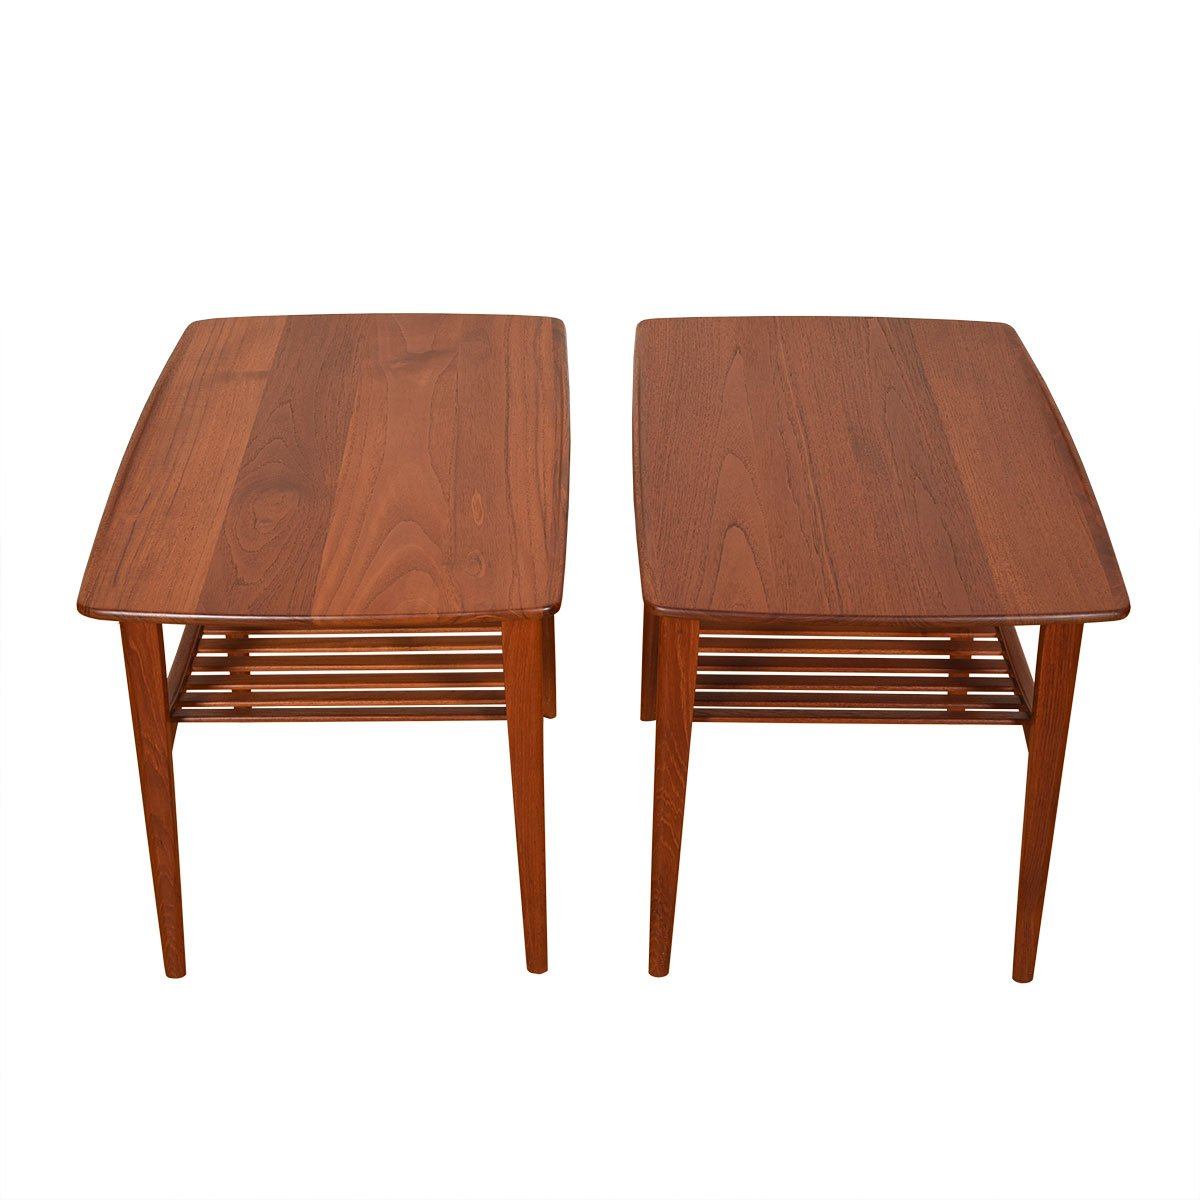 Pair Solid-Teak End Tables w/ Slatted Shelves.